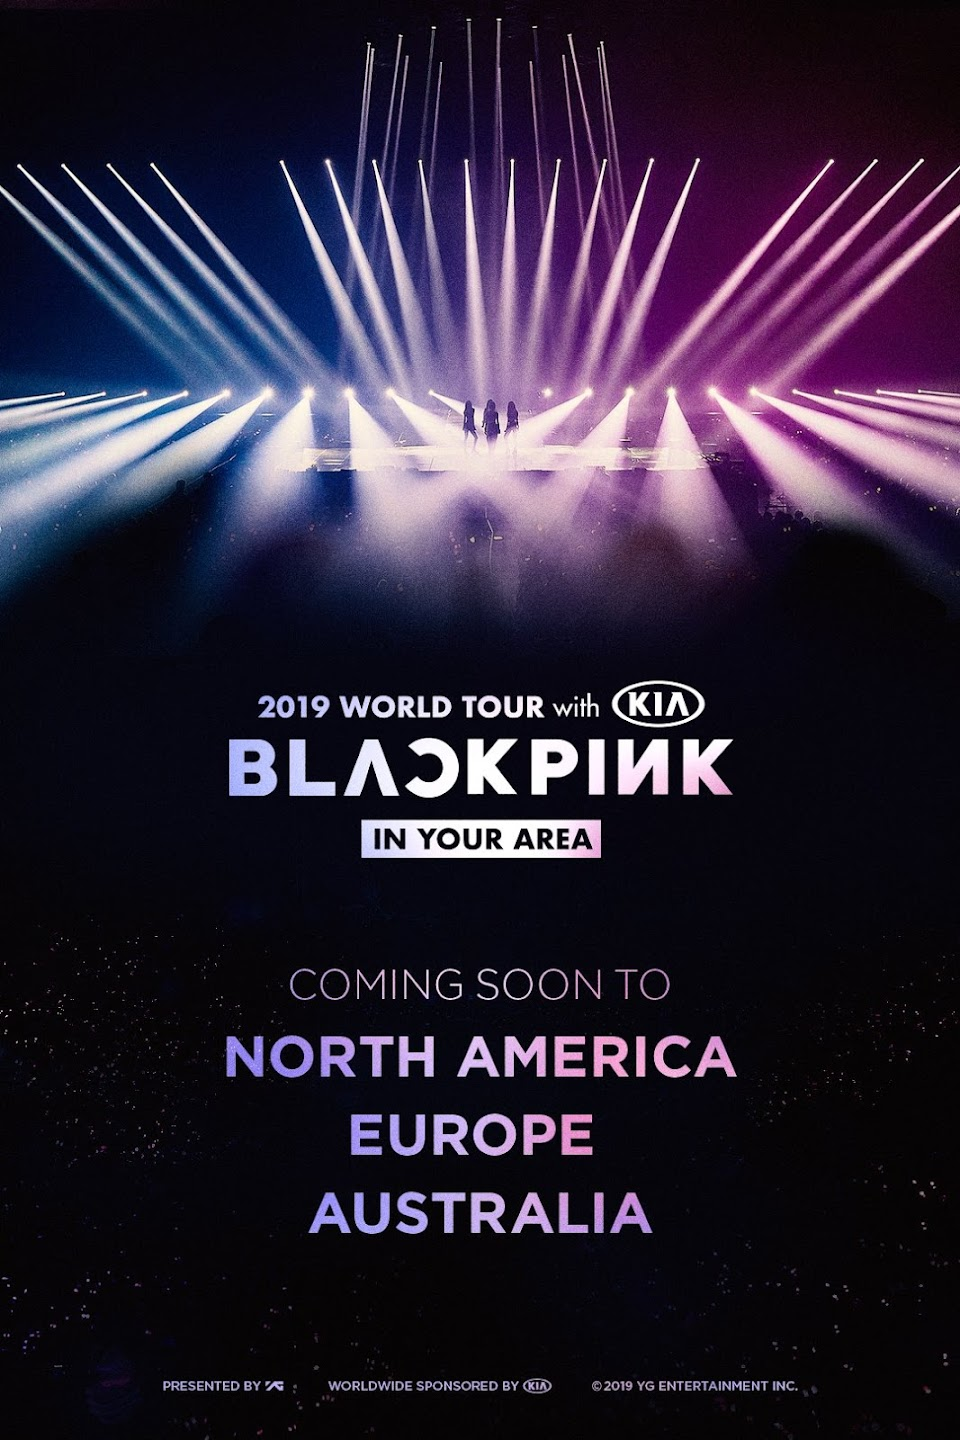 blackpink north america tour 2019